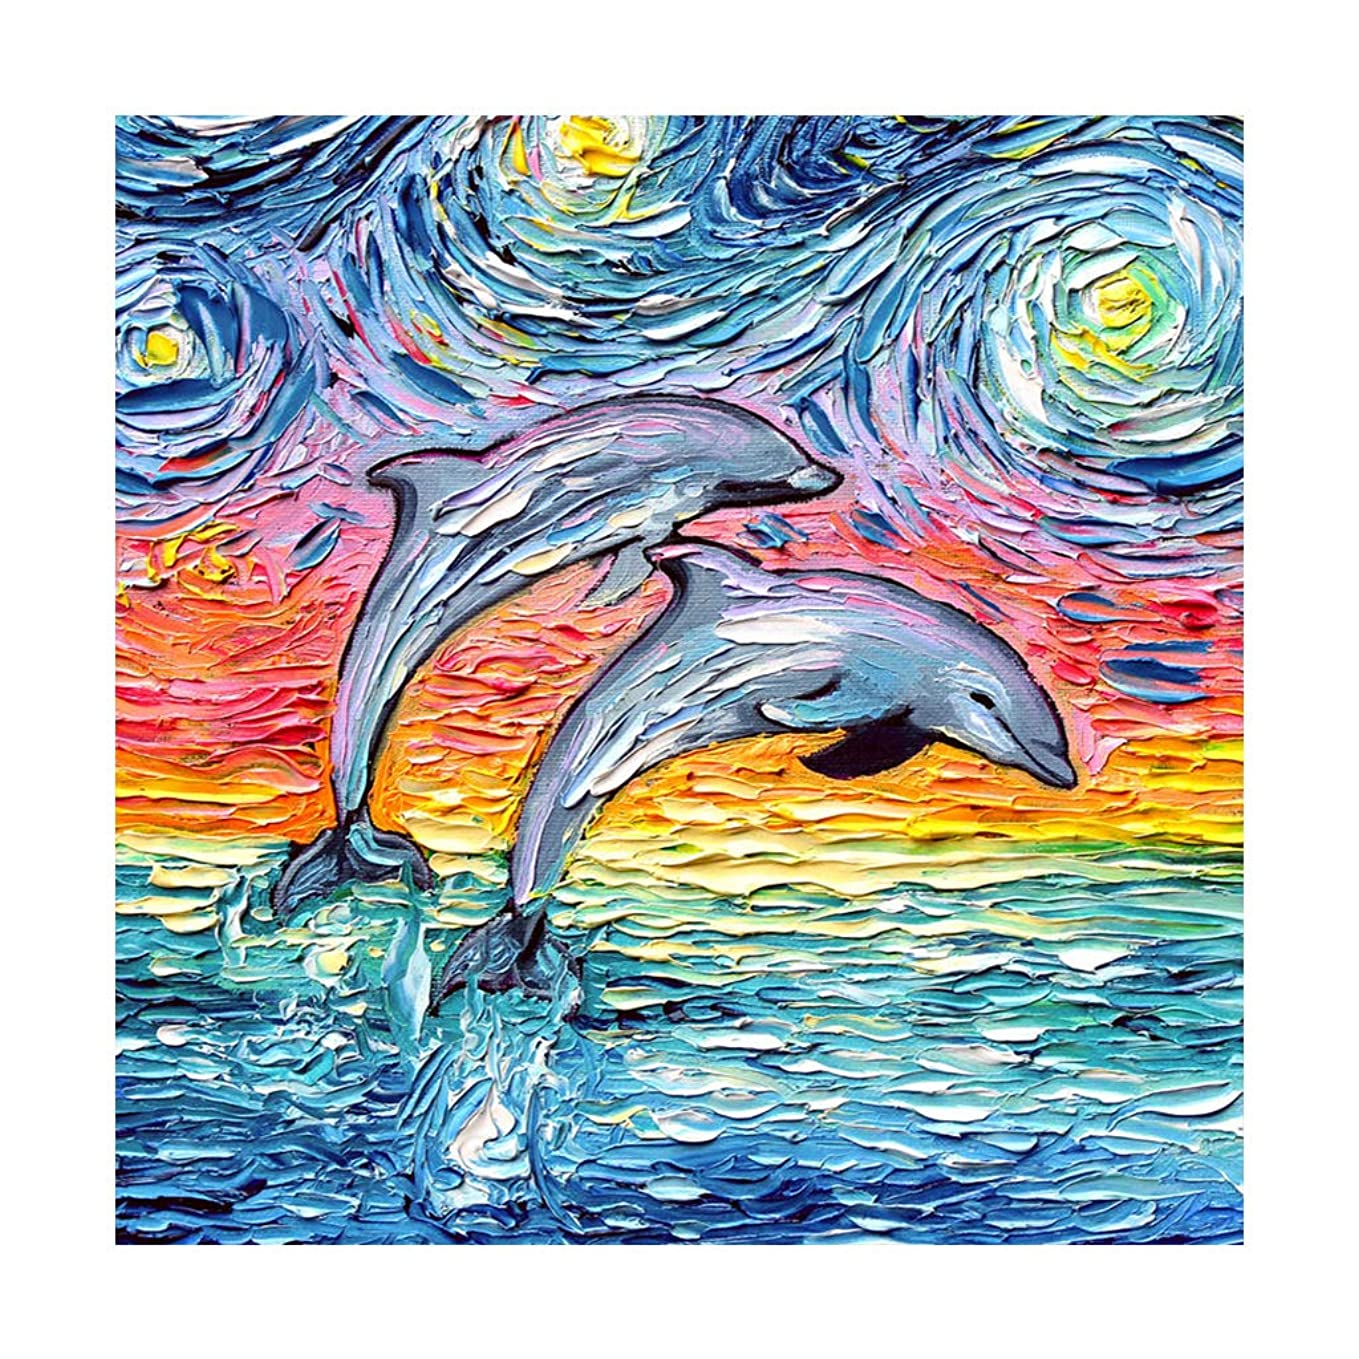 DIY Diamond Painting Kits for Adults,Dolphin in The Stars for Wall,5d Diamond Art Rhinestone Embroidery Cross Stitch Kits Supply Arts Craft Canvas Wall Decor Stickers 12x12 inches hh0671093222860